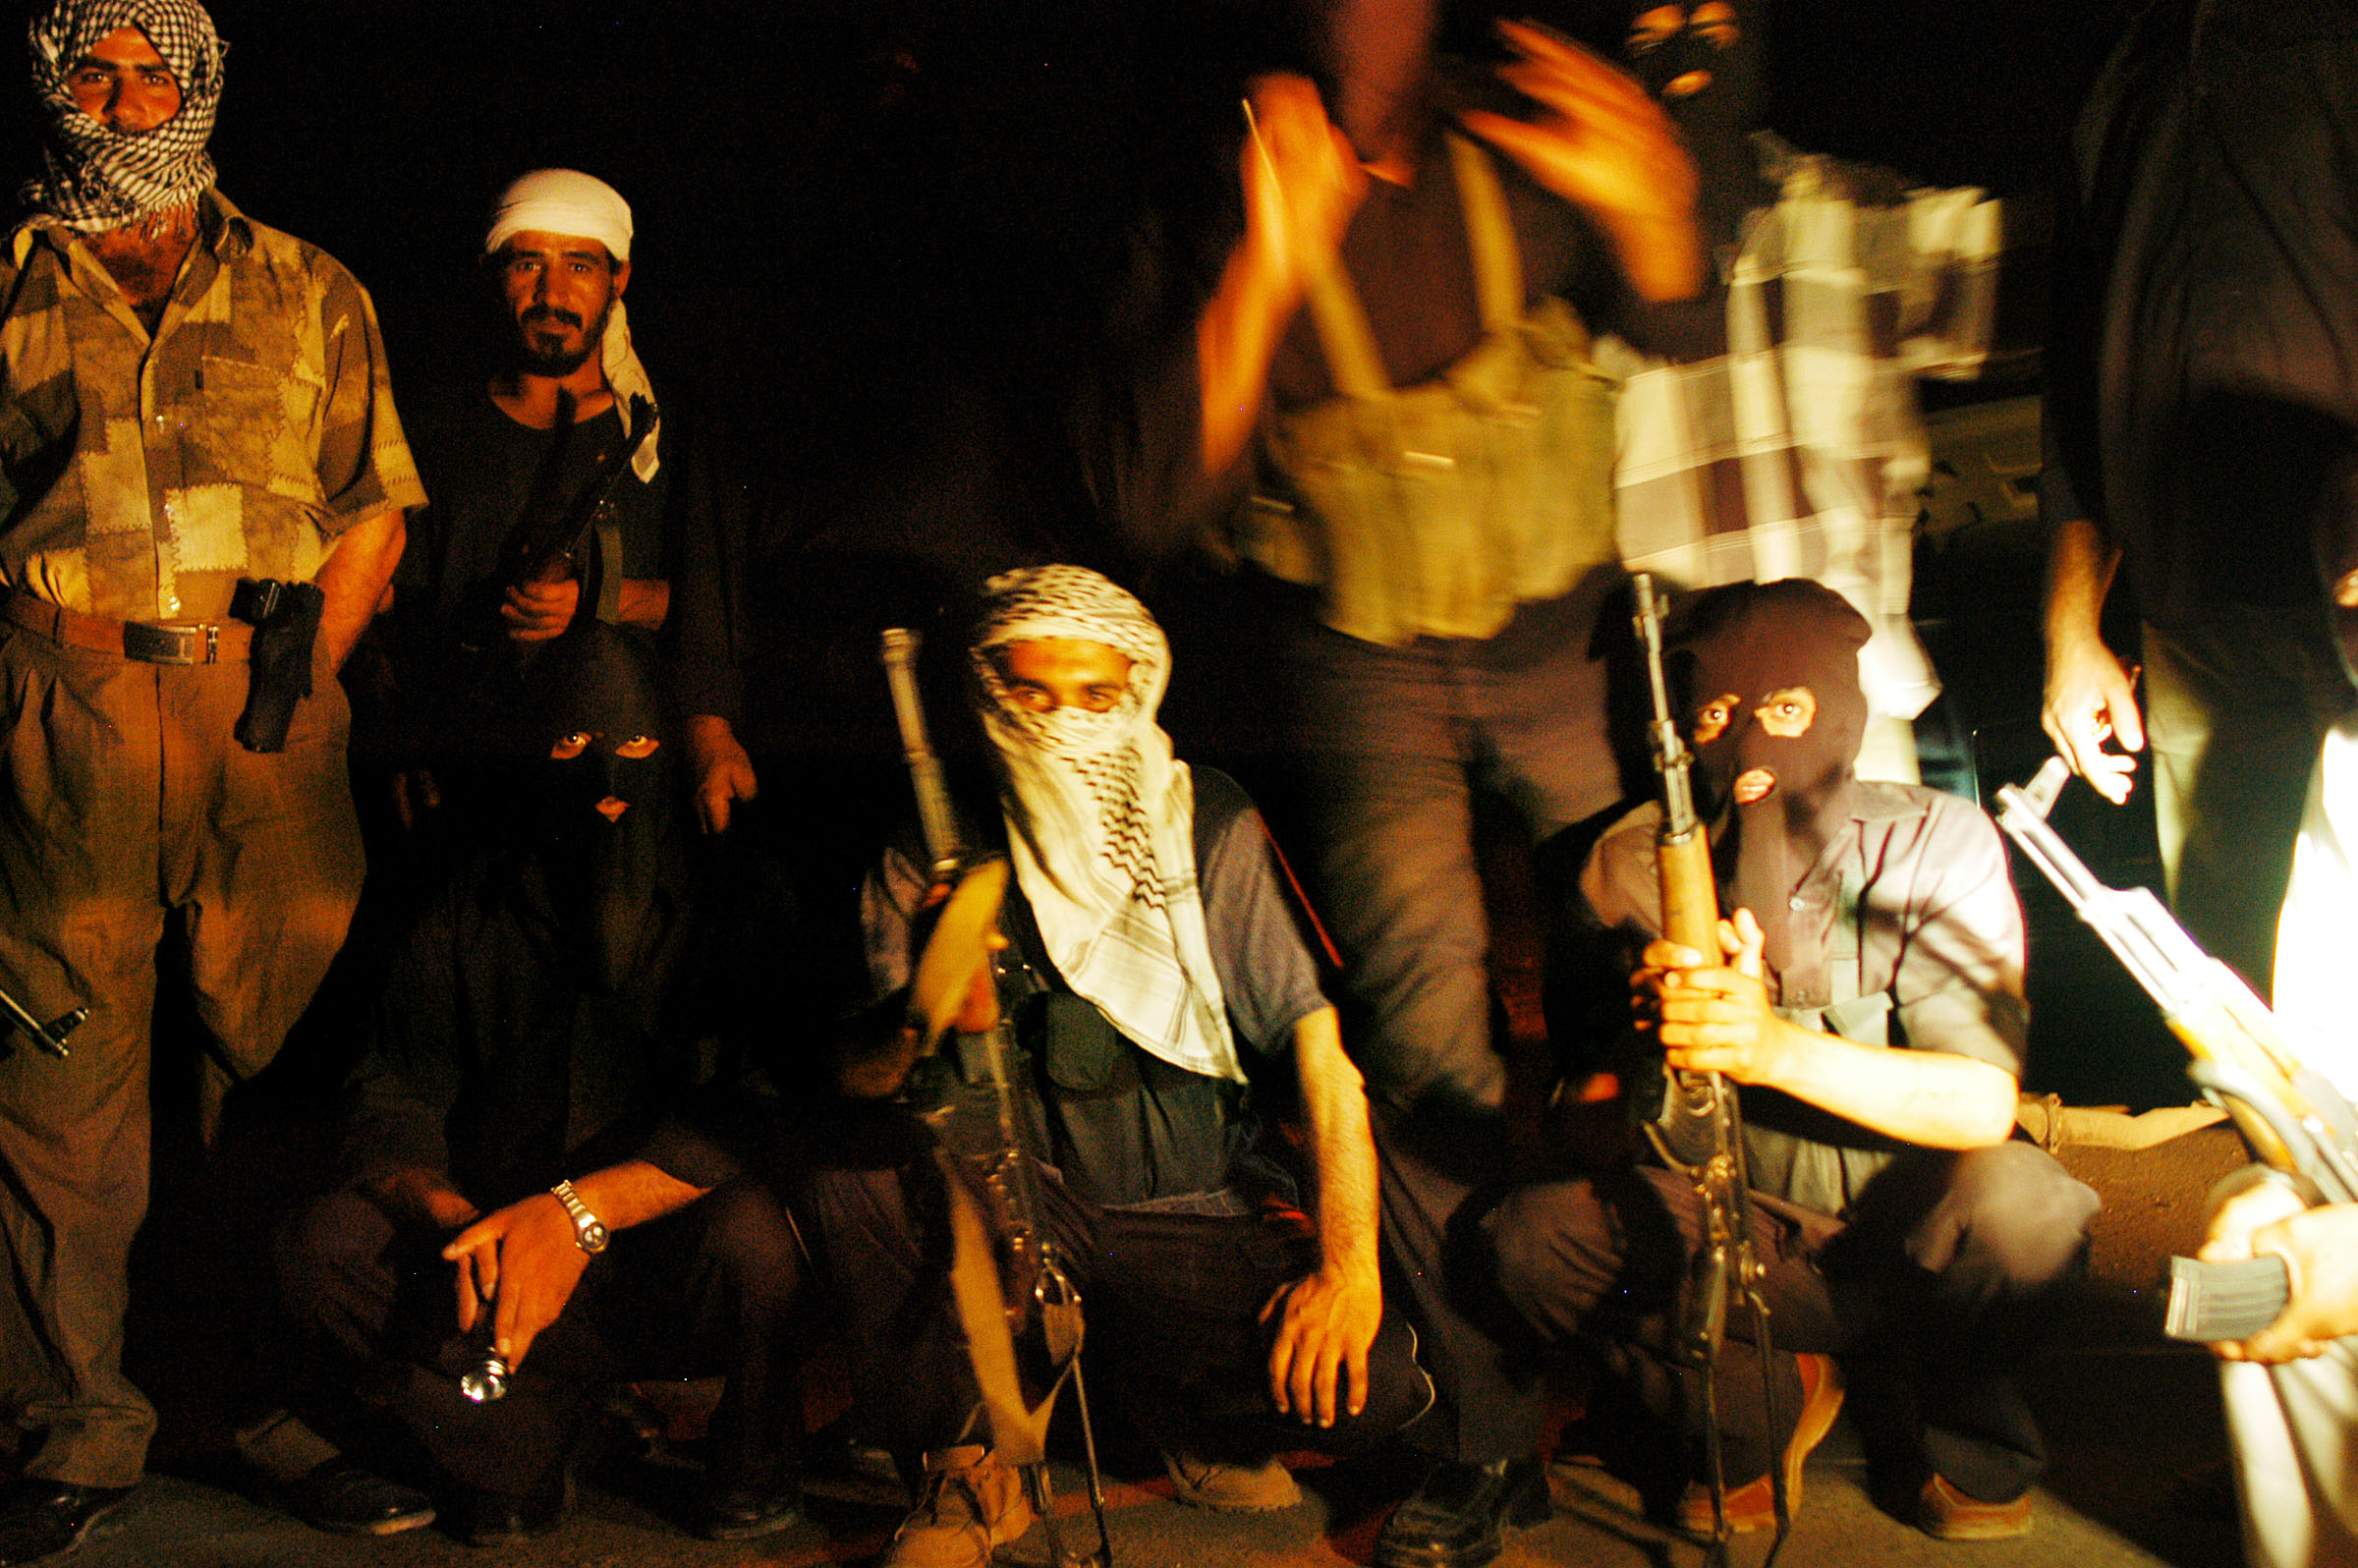 Members of the Mahdi Army pose for a picture while on a night patrol through Sadr City after midnight, July 25, 2004.   Since the handover to Iraqi sovereignty, militias like the mahdi army are quietly being used by the administration in coalition with government police forces to help stablilize troubled and crime-ridden areas throughout the country.